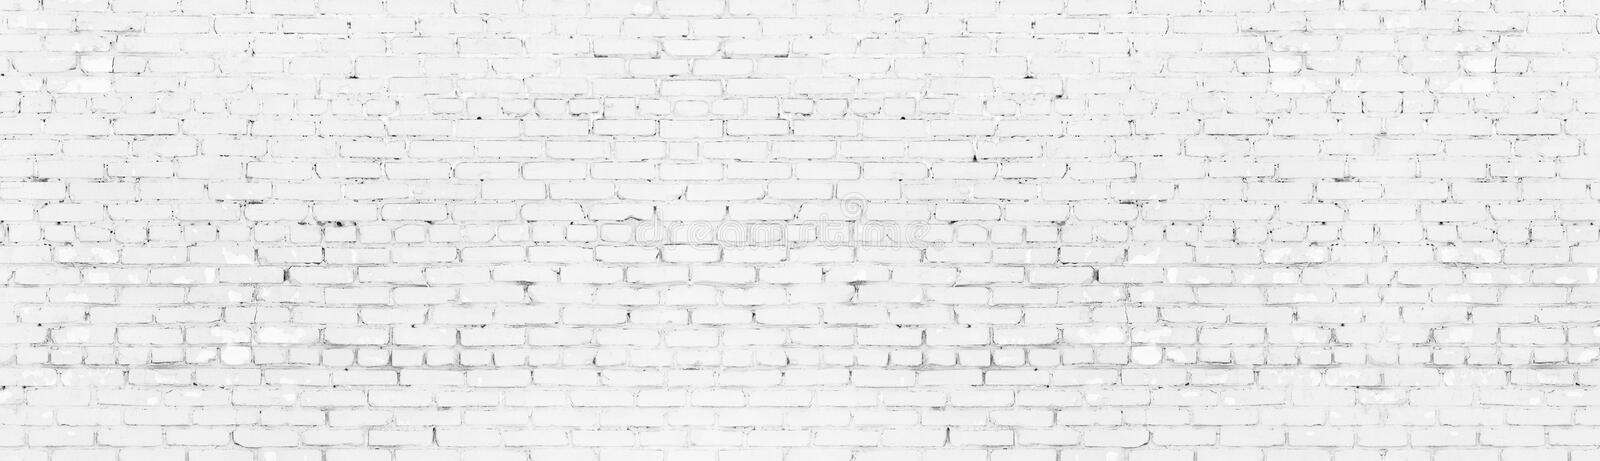 Texture panoramique large blanchie de mur de briques minable Le blanc a peint le panorama ?g? de brique Long fond clair illustration libre de droits